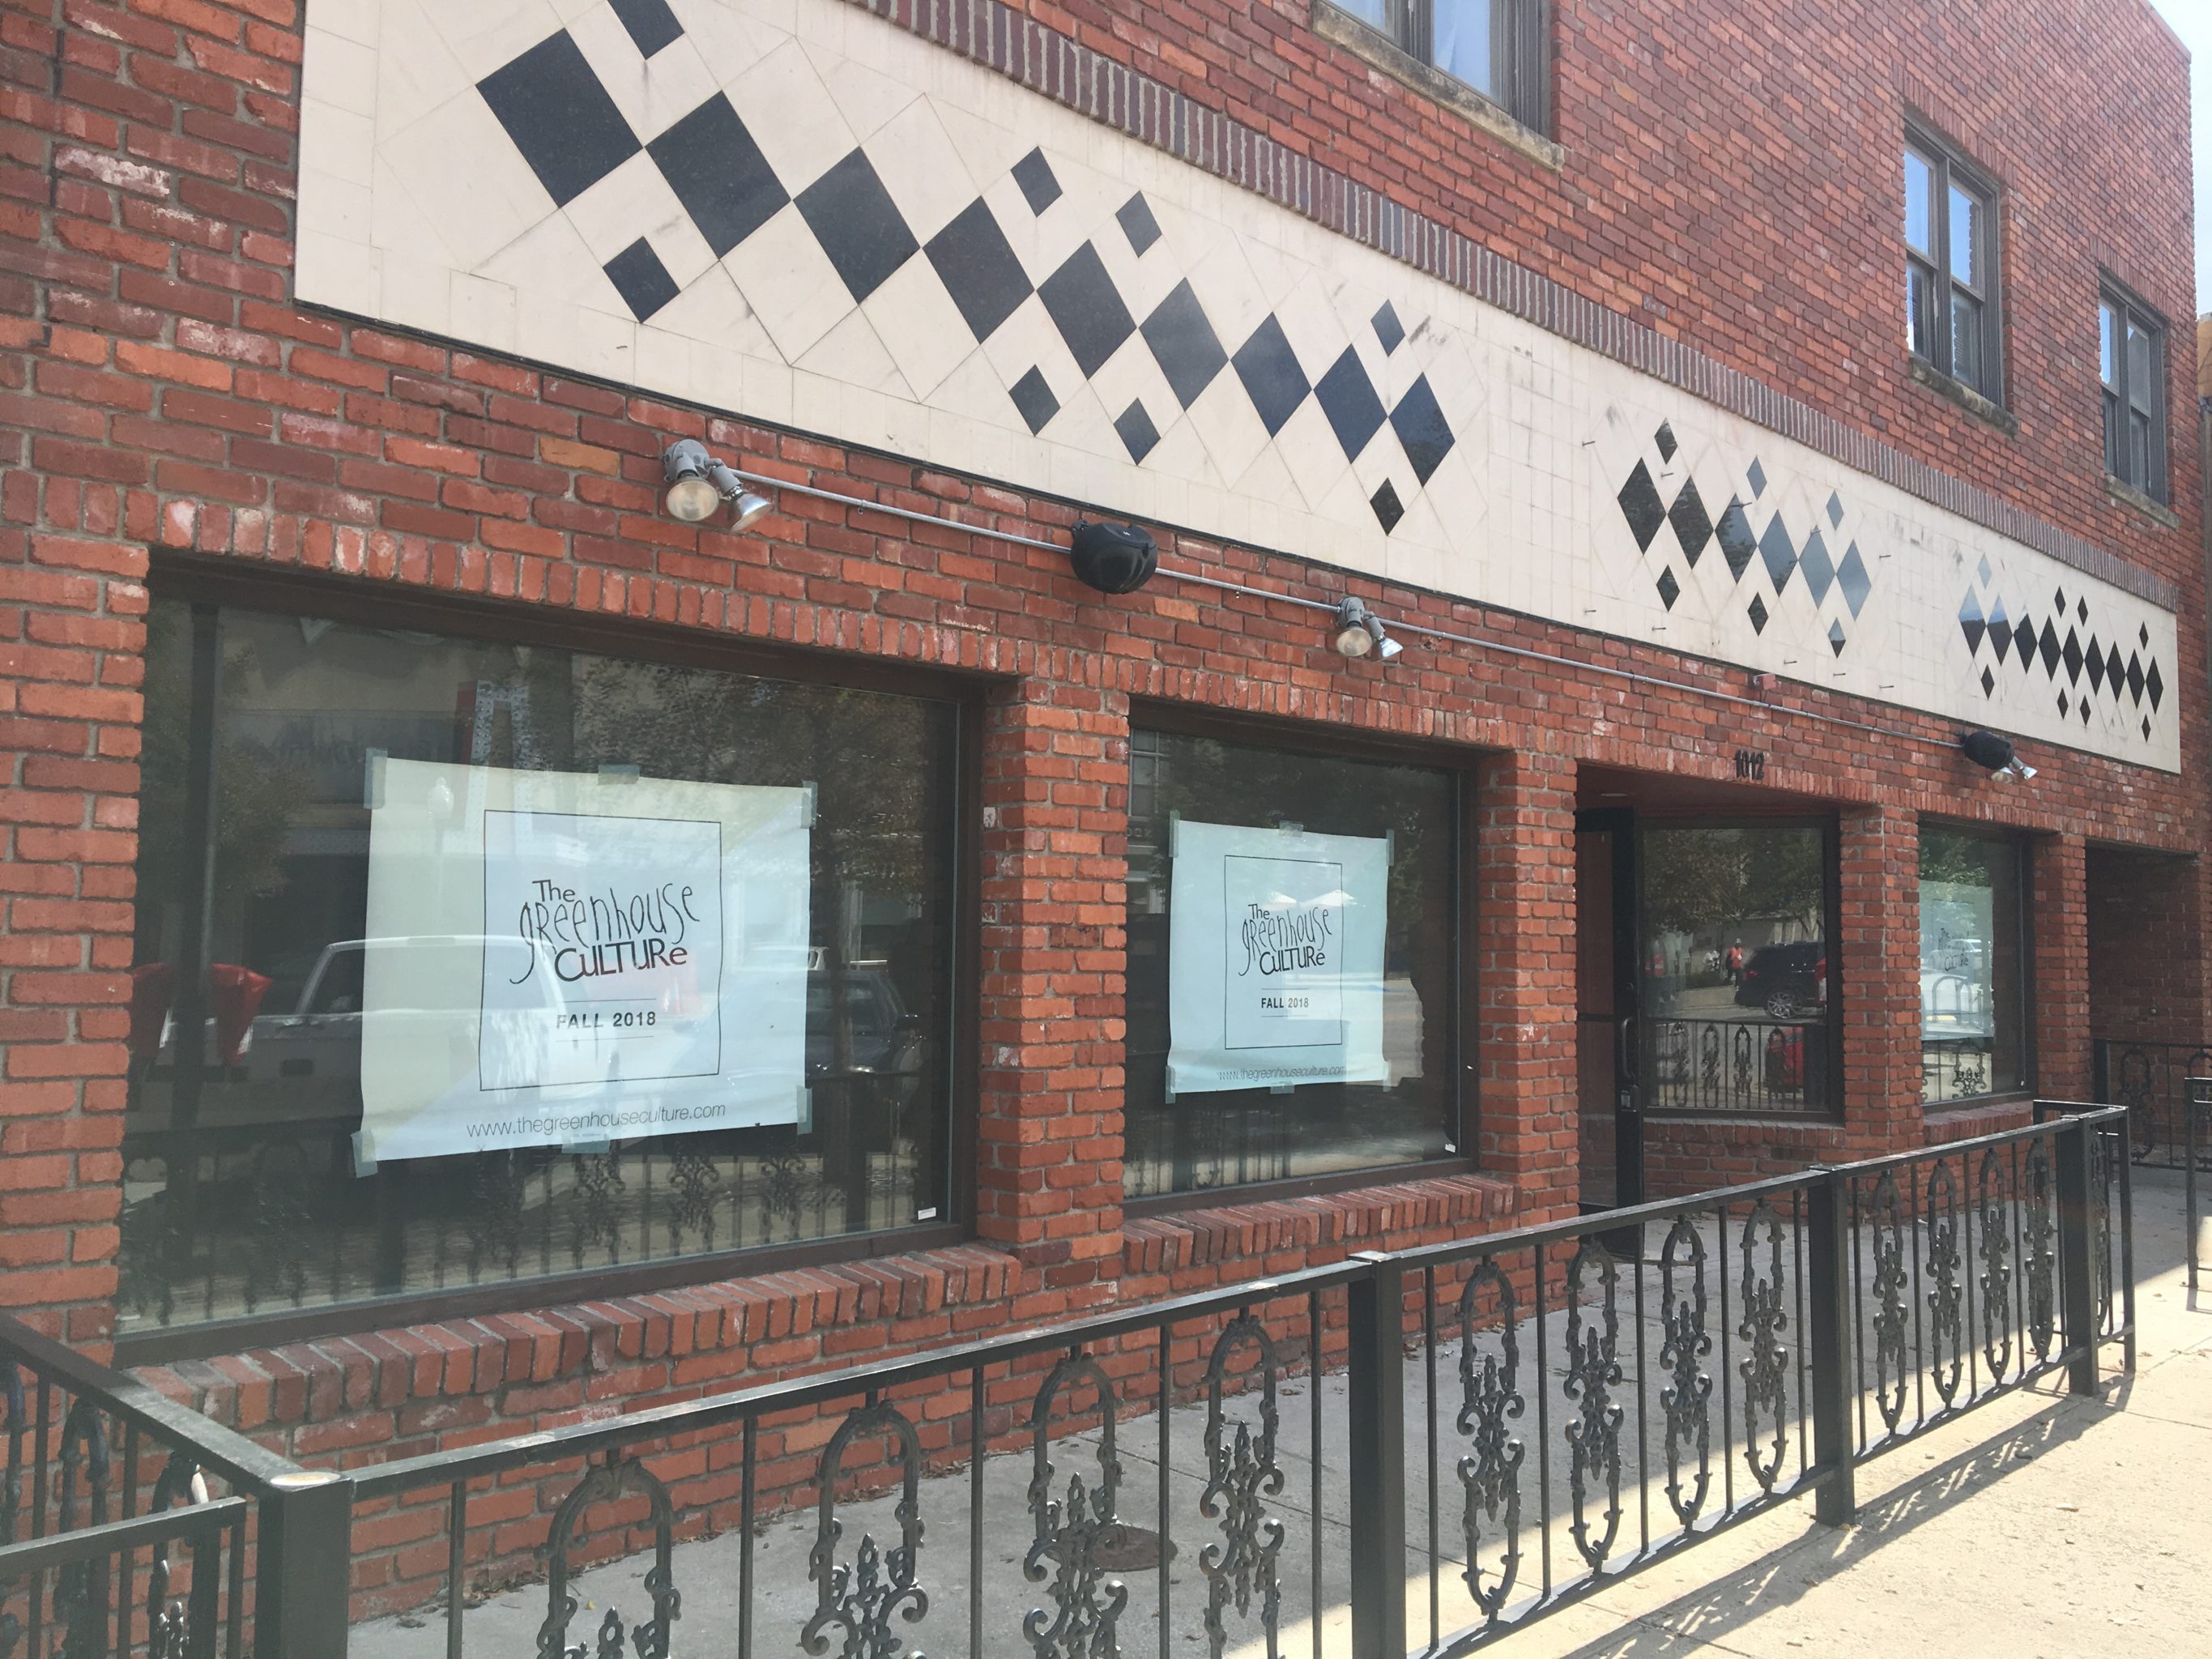 Local church leaving Masonic Temple building for a space